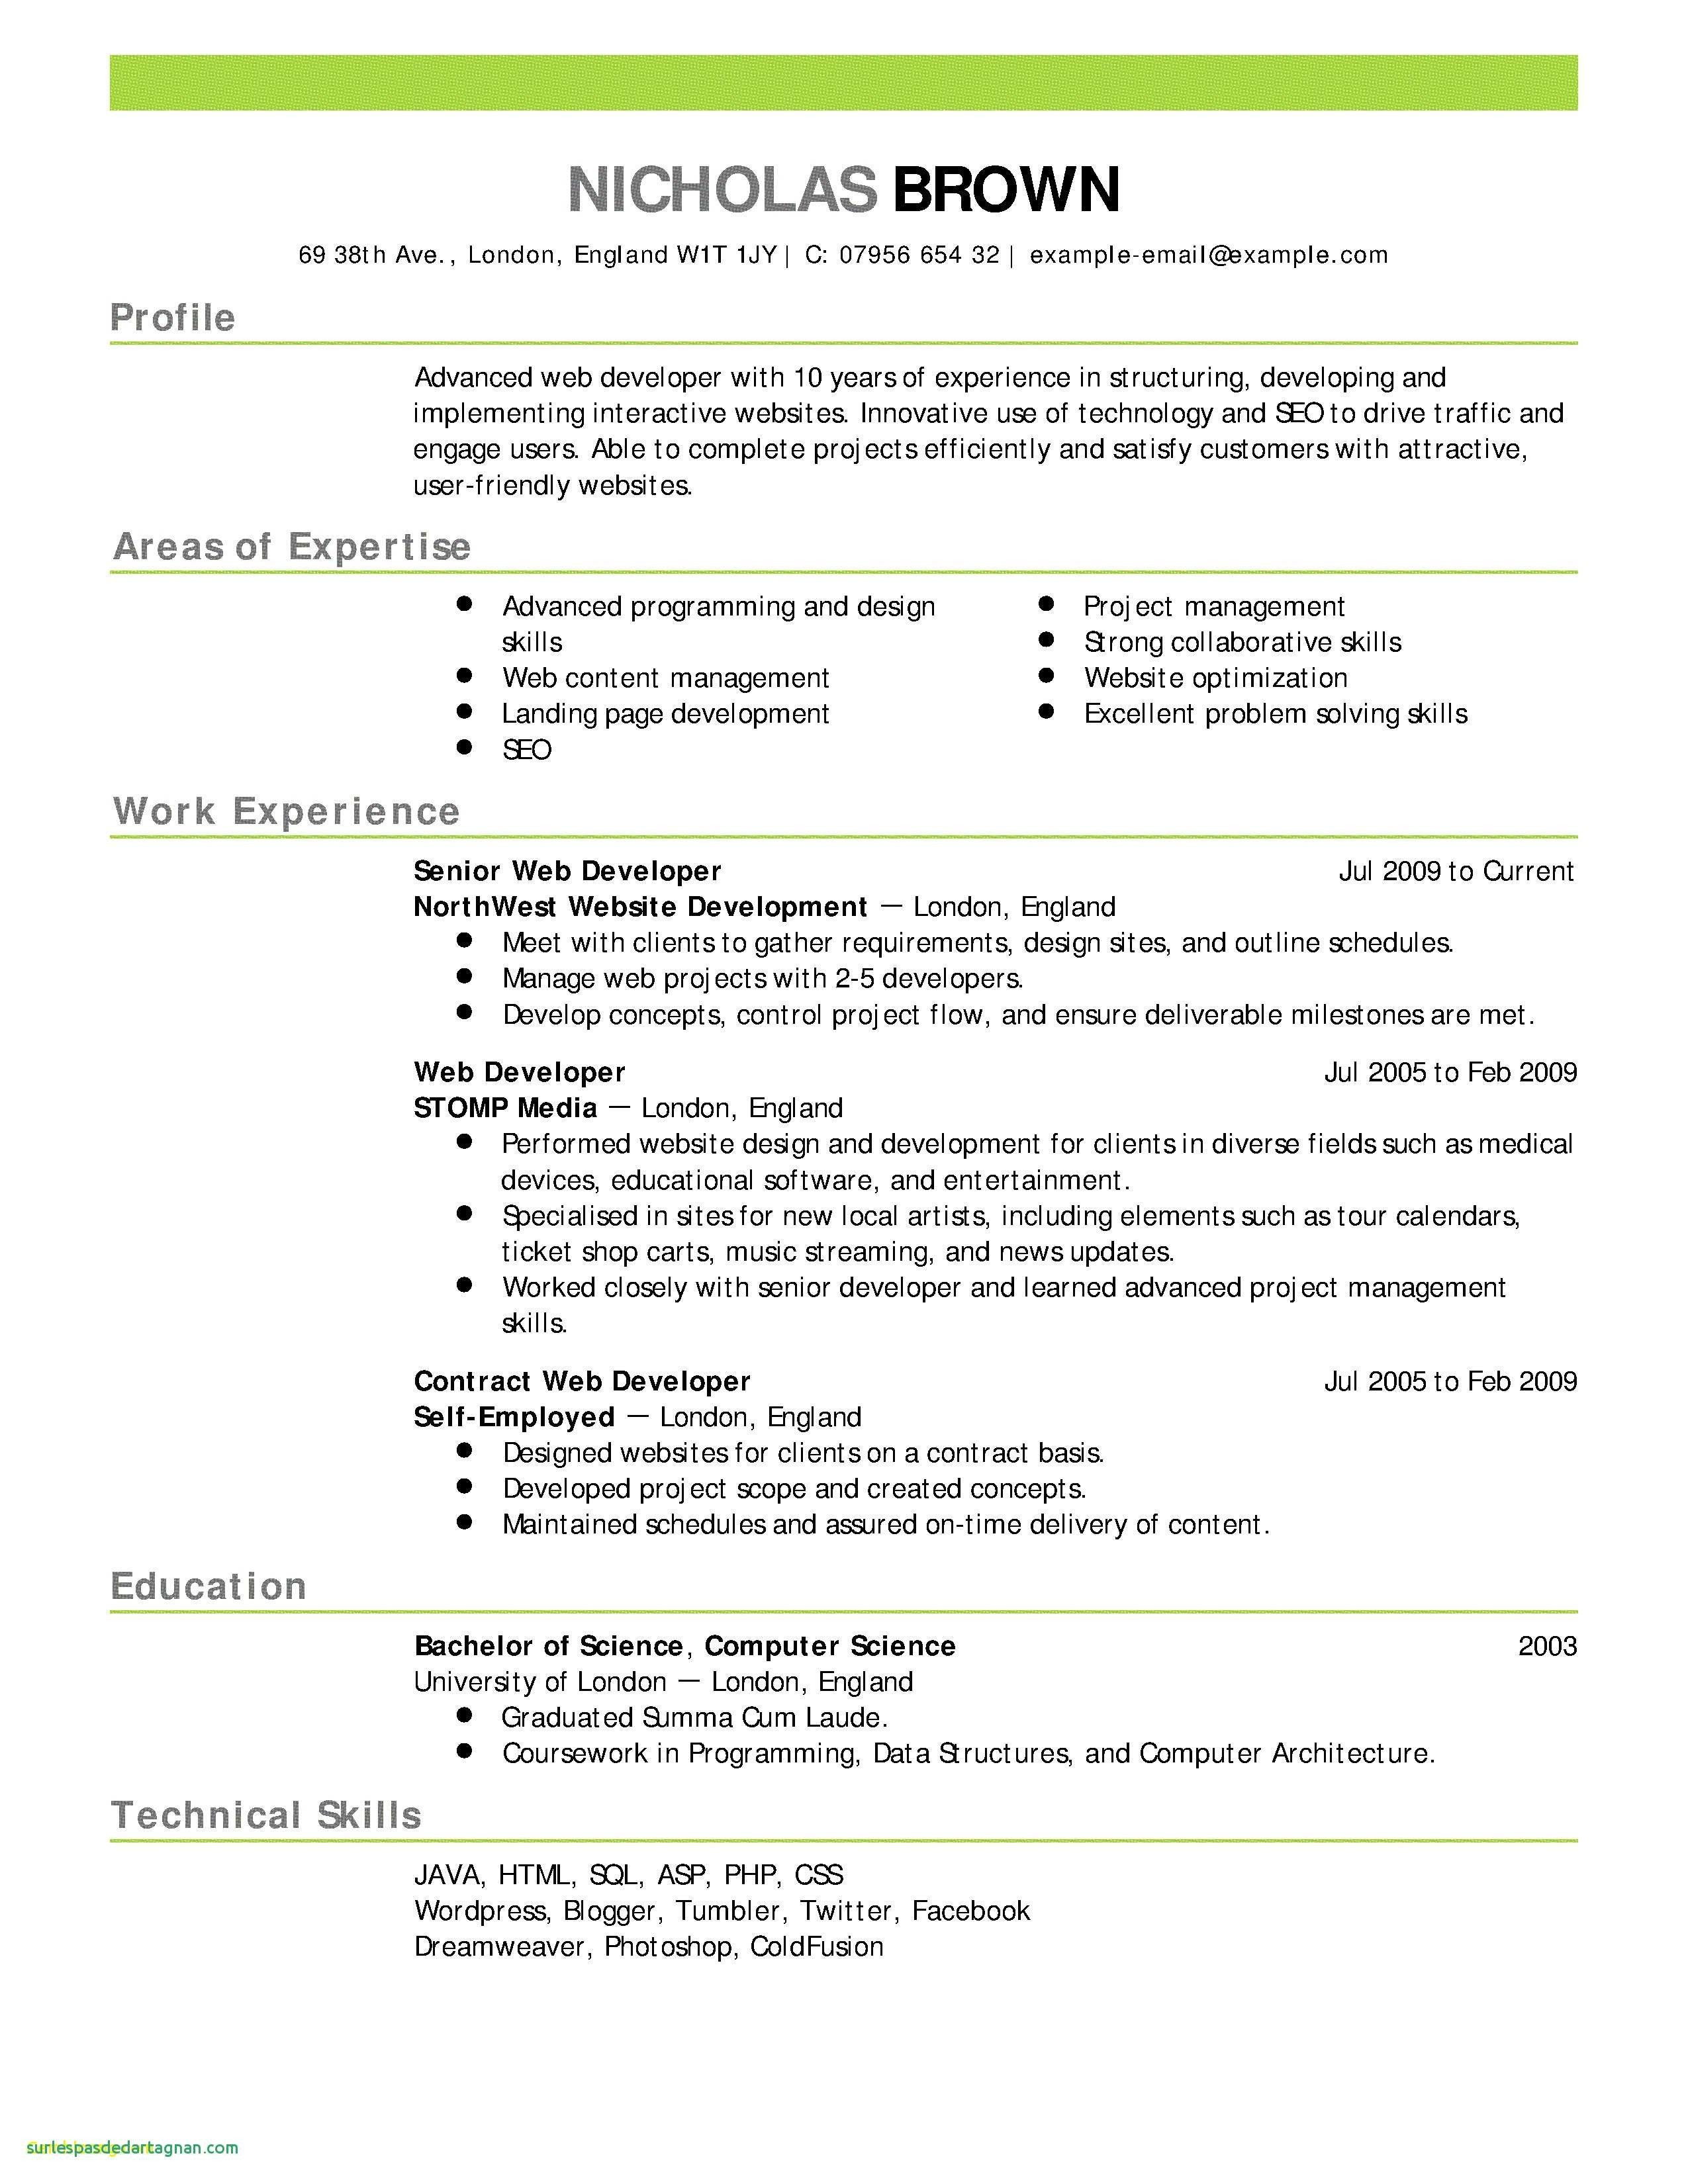 Word Resume Templates - 16 Luxury Word Resume Template Land Of Template